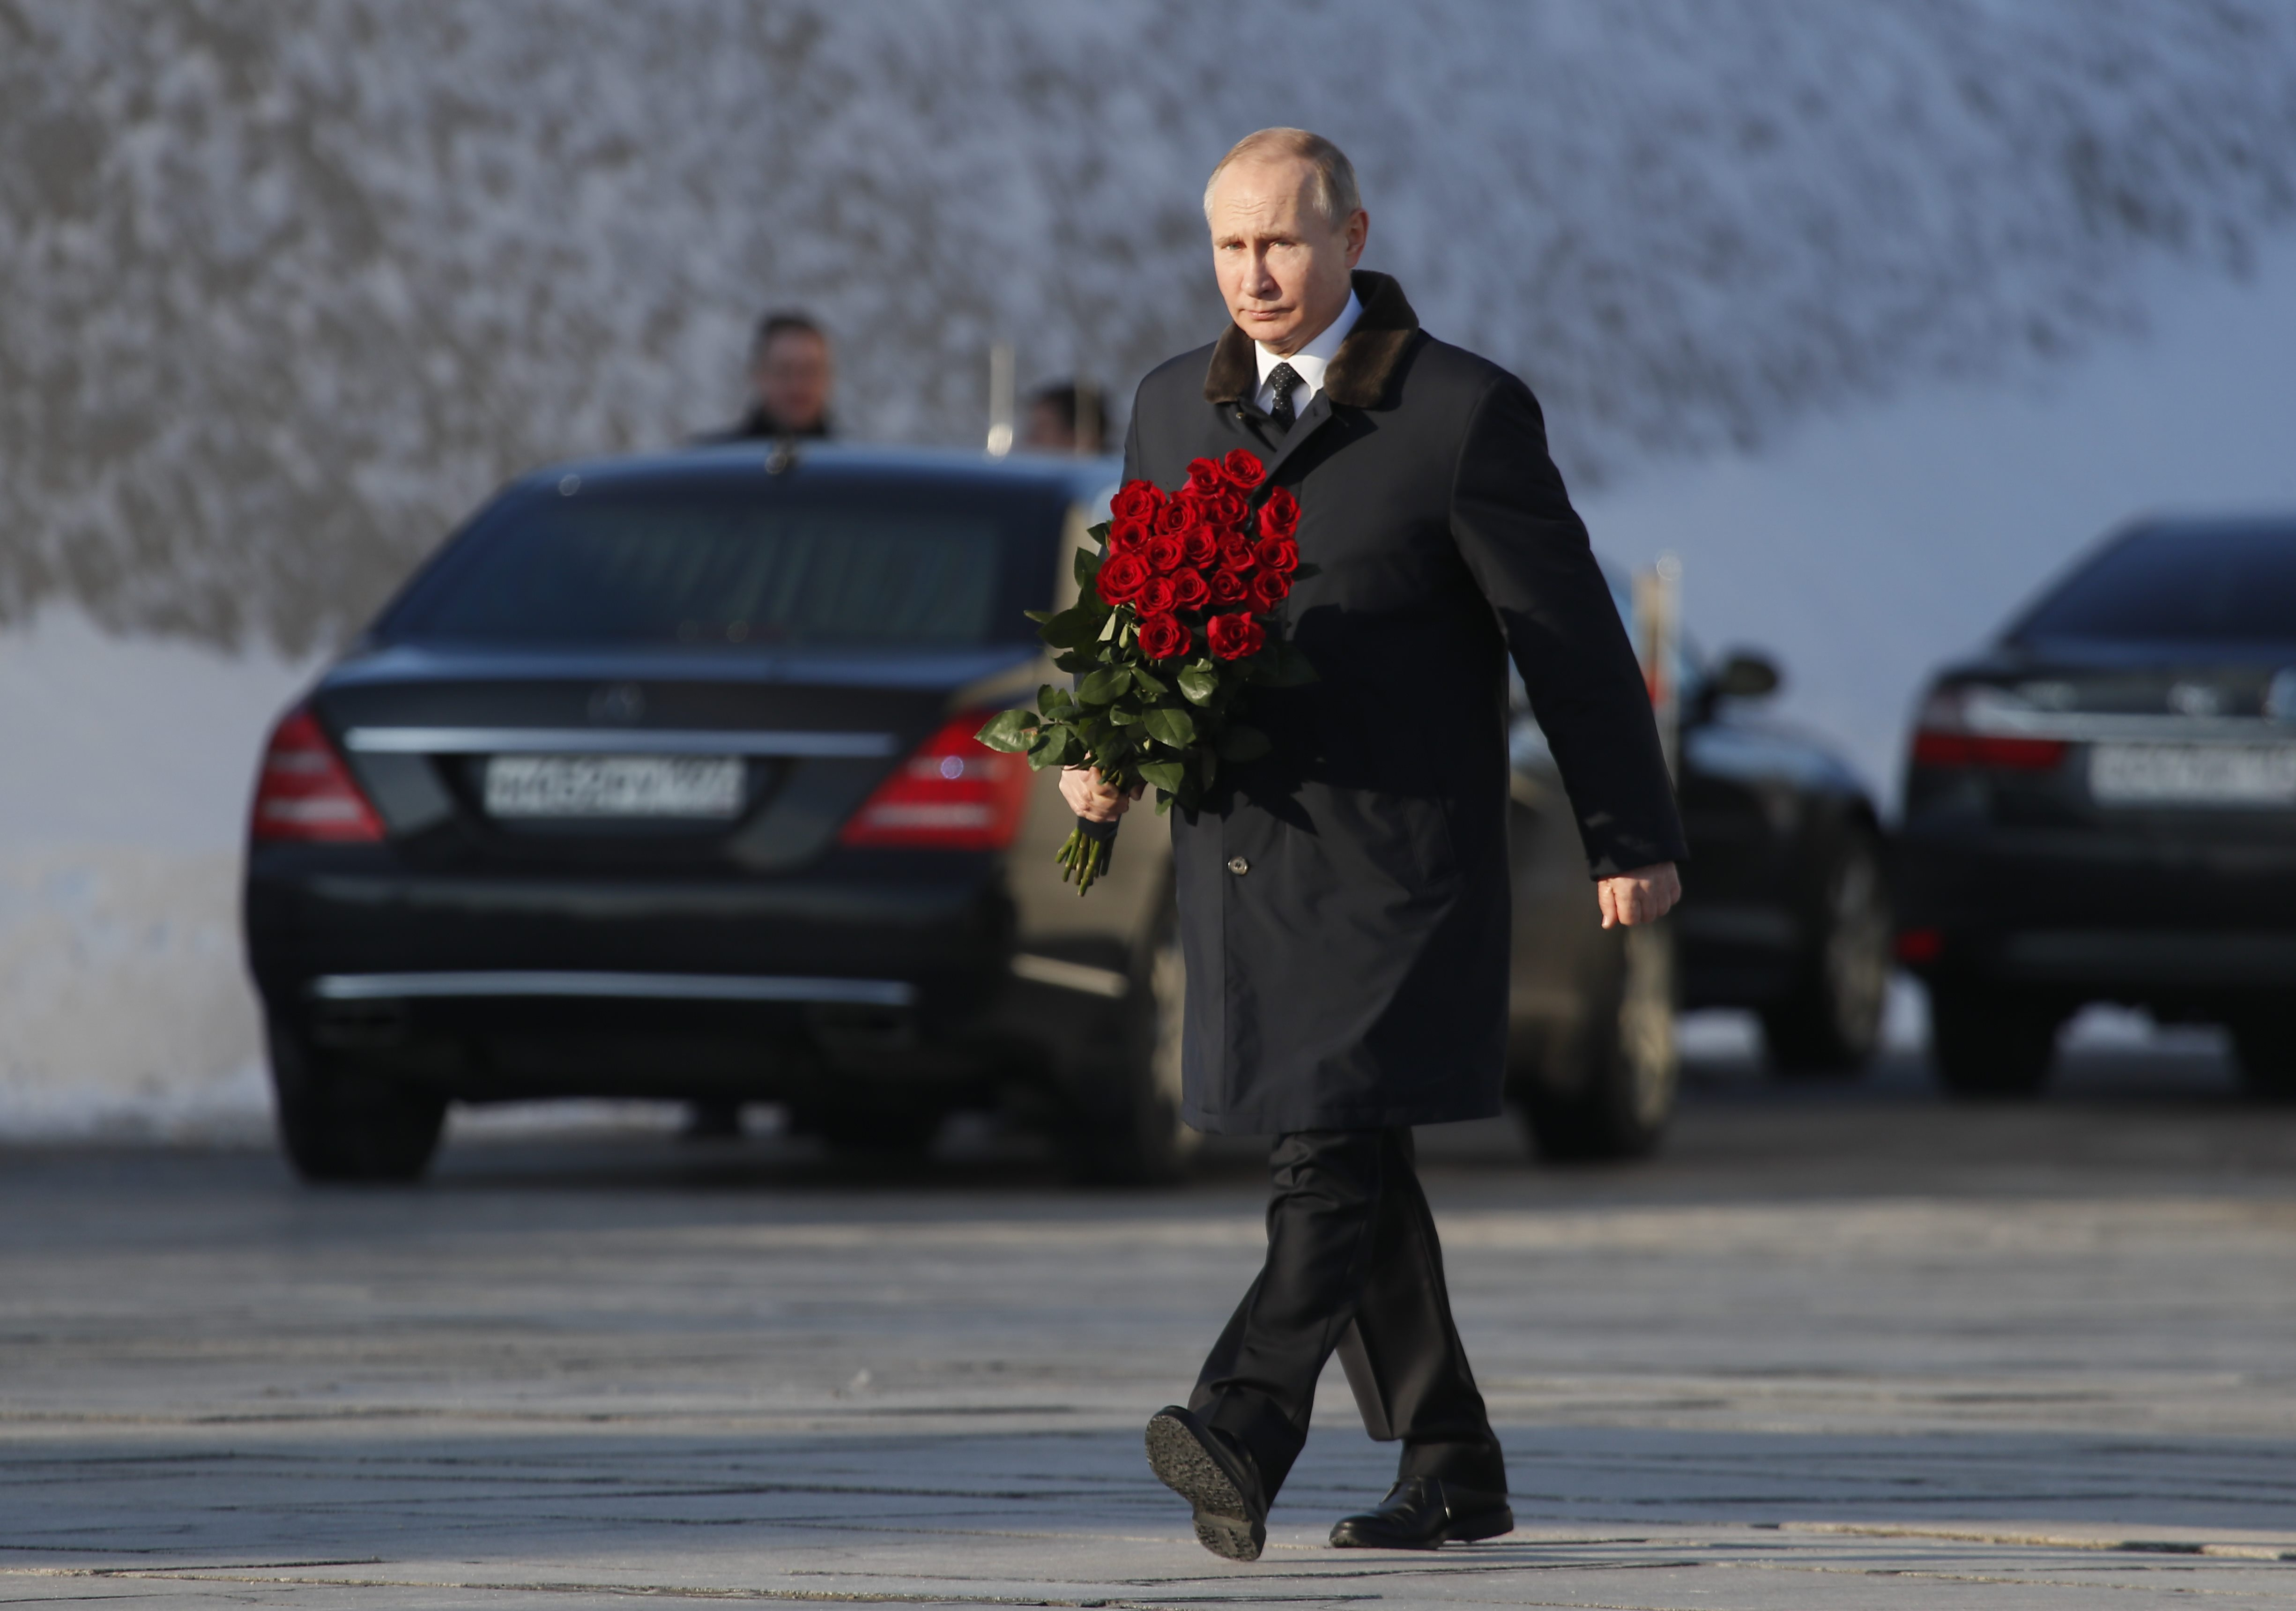 Russian President Vladimir Putin attends a wreath laying ceremony at the eternal flame during an event to commemorate the 75th anniversary of the battle of Stalingrad in World War Two, at the Mamayev Kurgan memorial complex in the city of Volgograd, Russia February 2, 2018. REUTERS/Maxim Shemetov